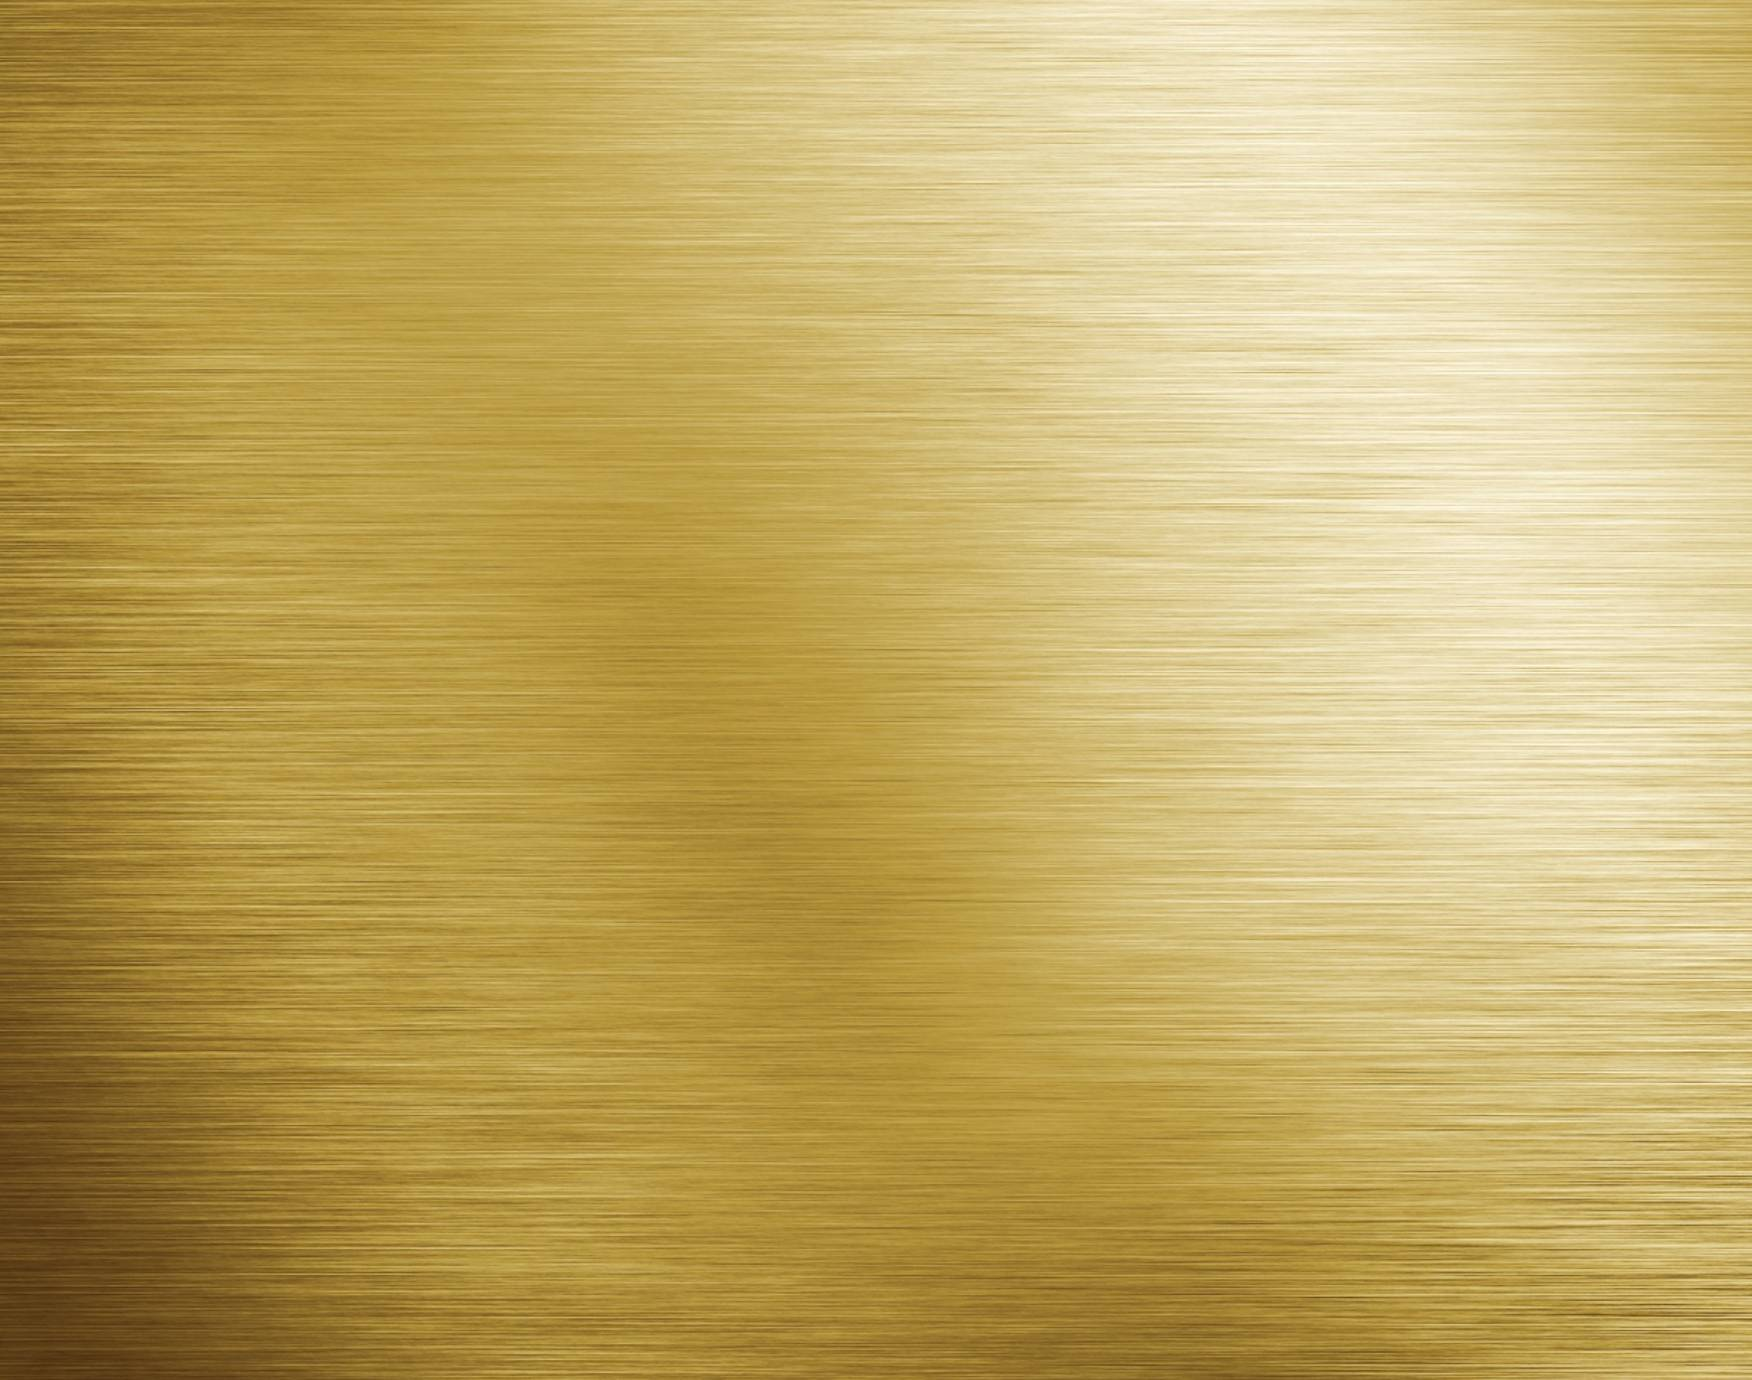 Gold Backgrounds Image 1752x1380